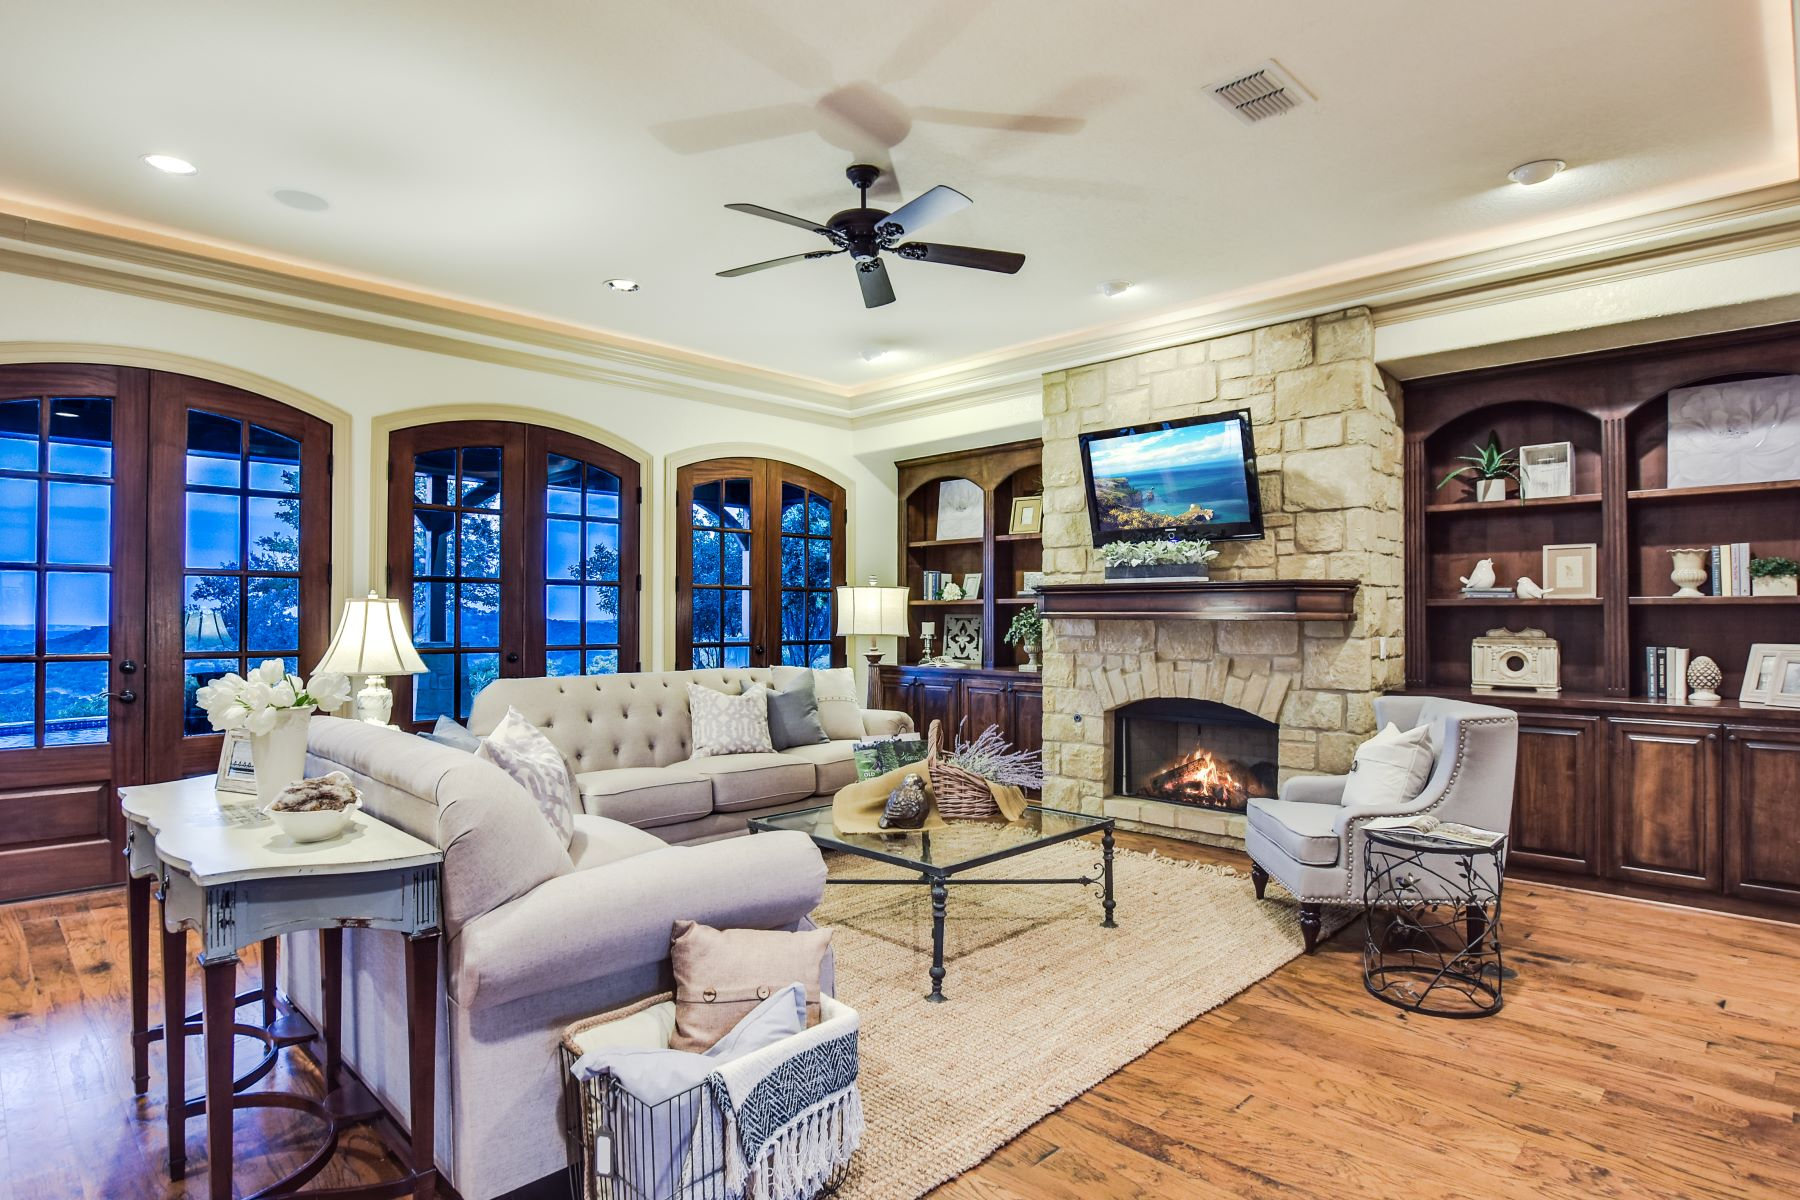 Additional photo for property listing at Panoramic View of the Hill Country 167 Estancia Ln Boerne, Texas 78006 United States